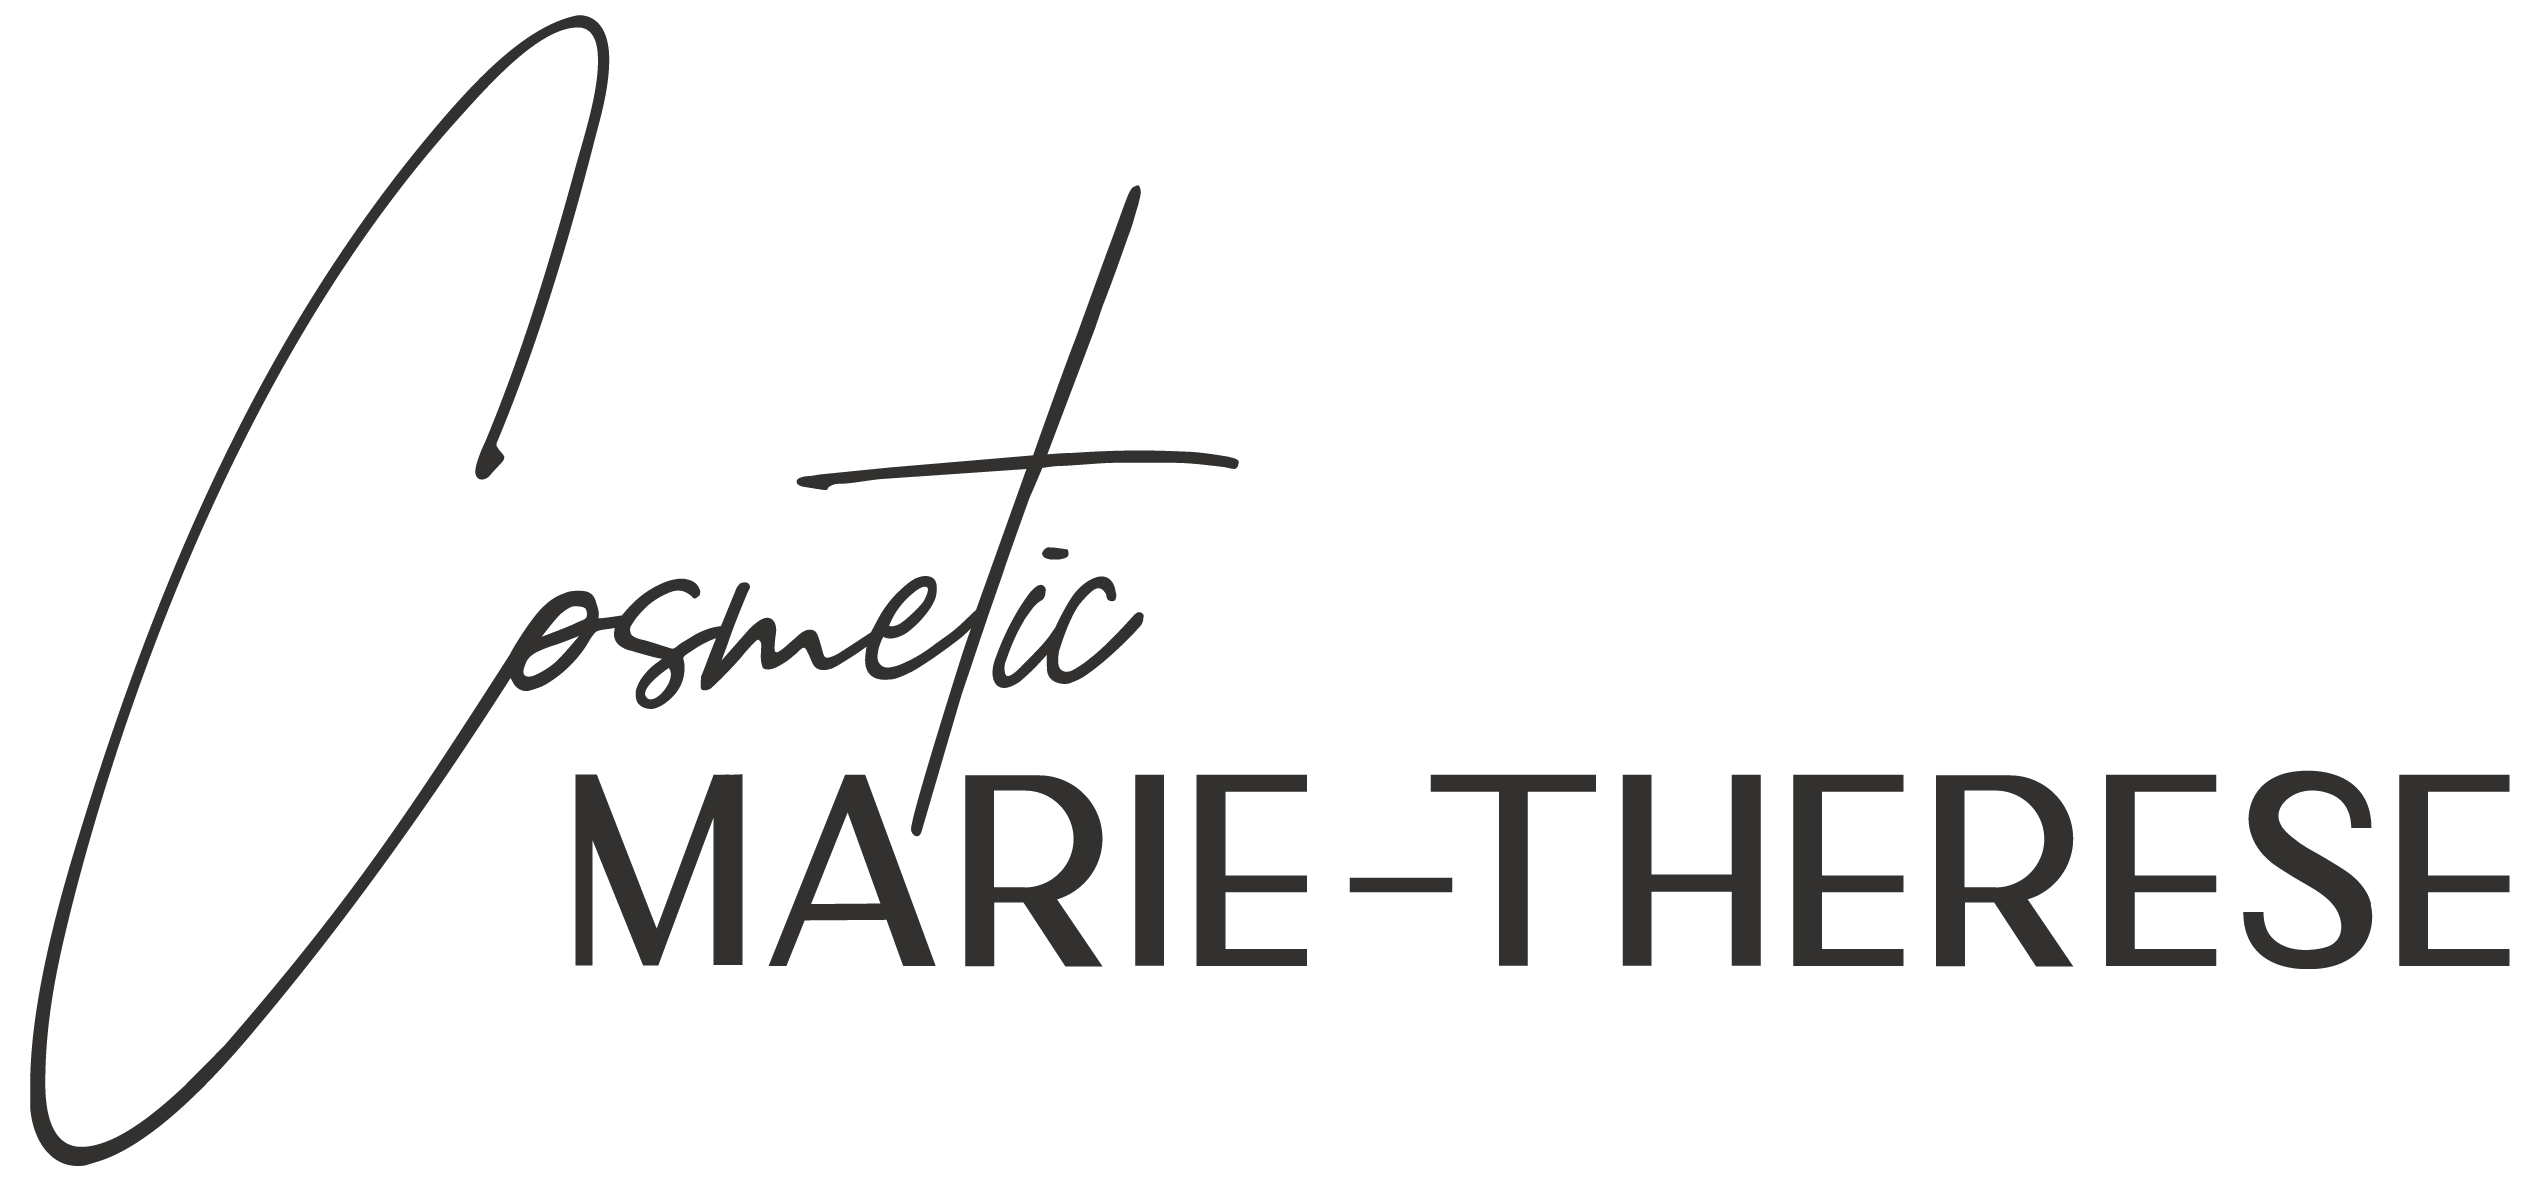 Cosmetic Marie-Therese